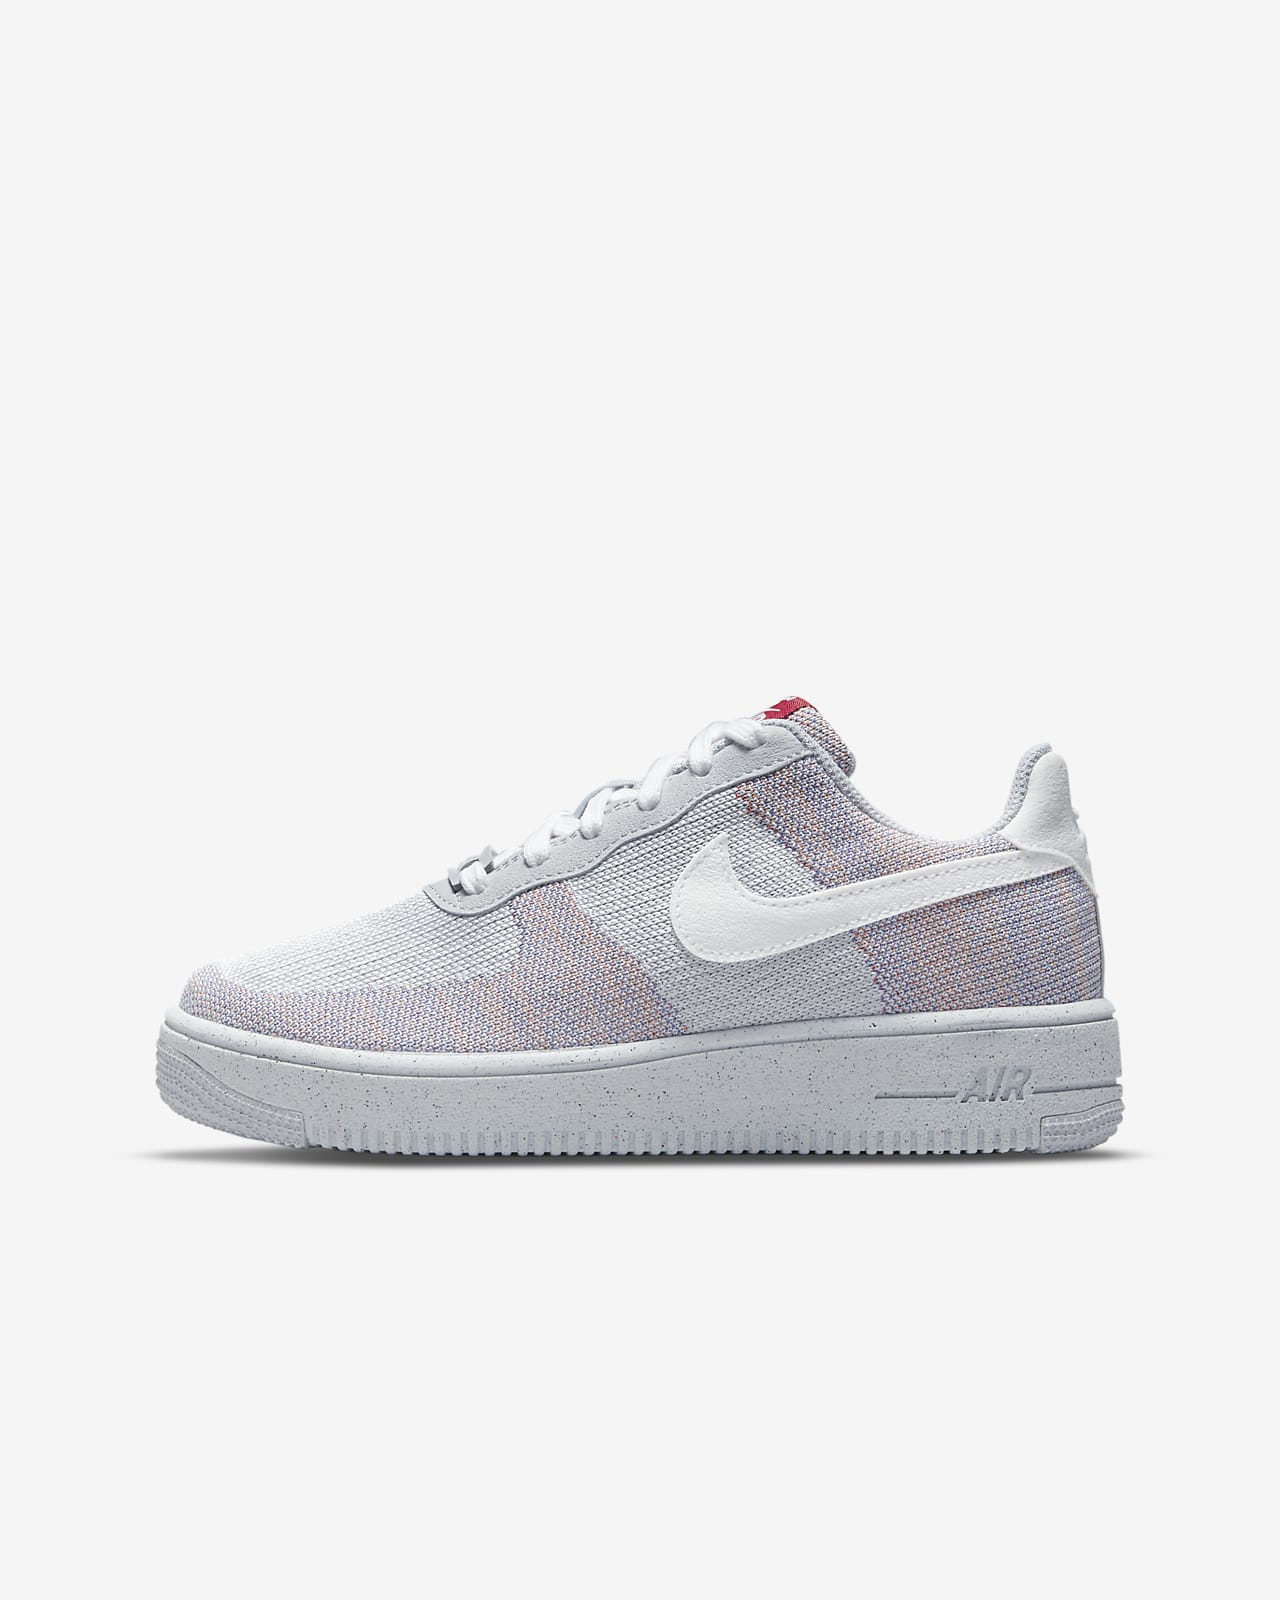 Nike Air Force 1 Crater Flyknit Big Kids' Shoes